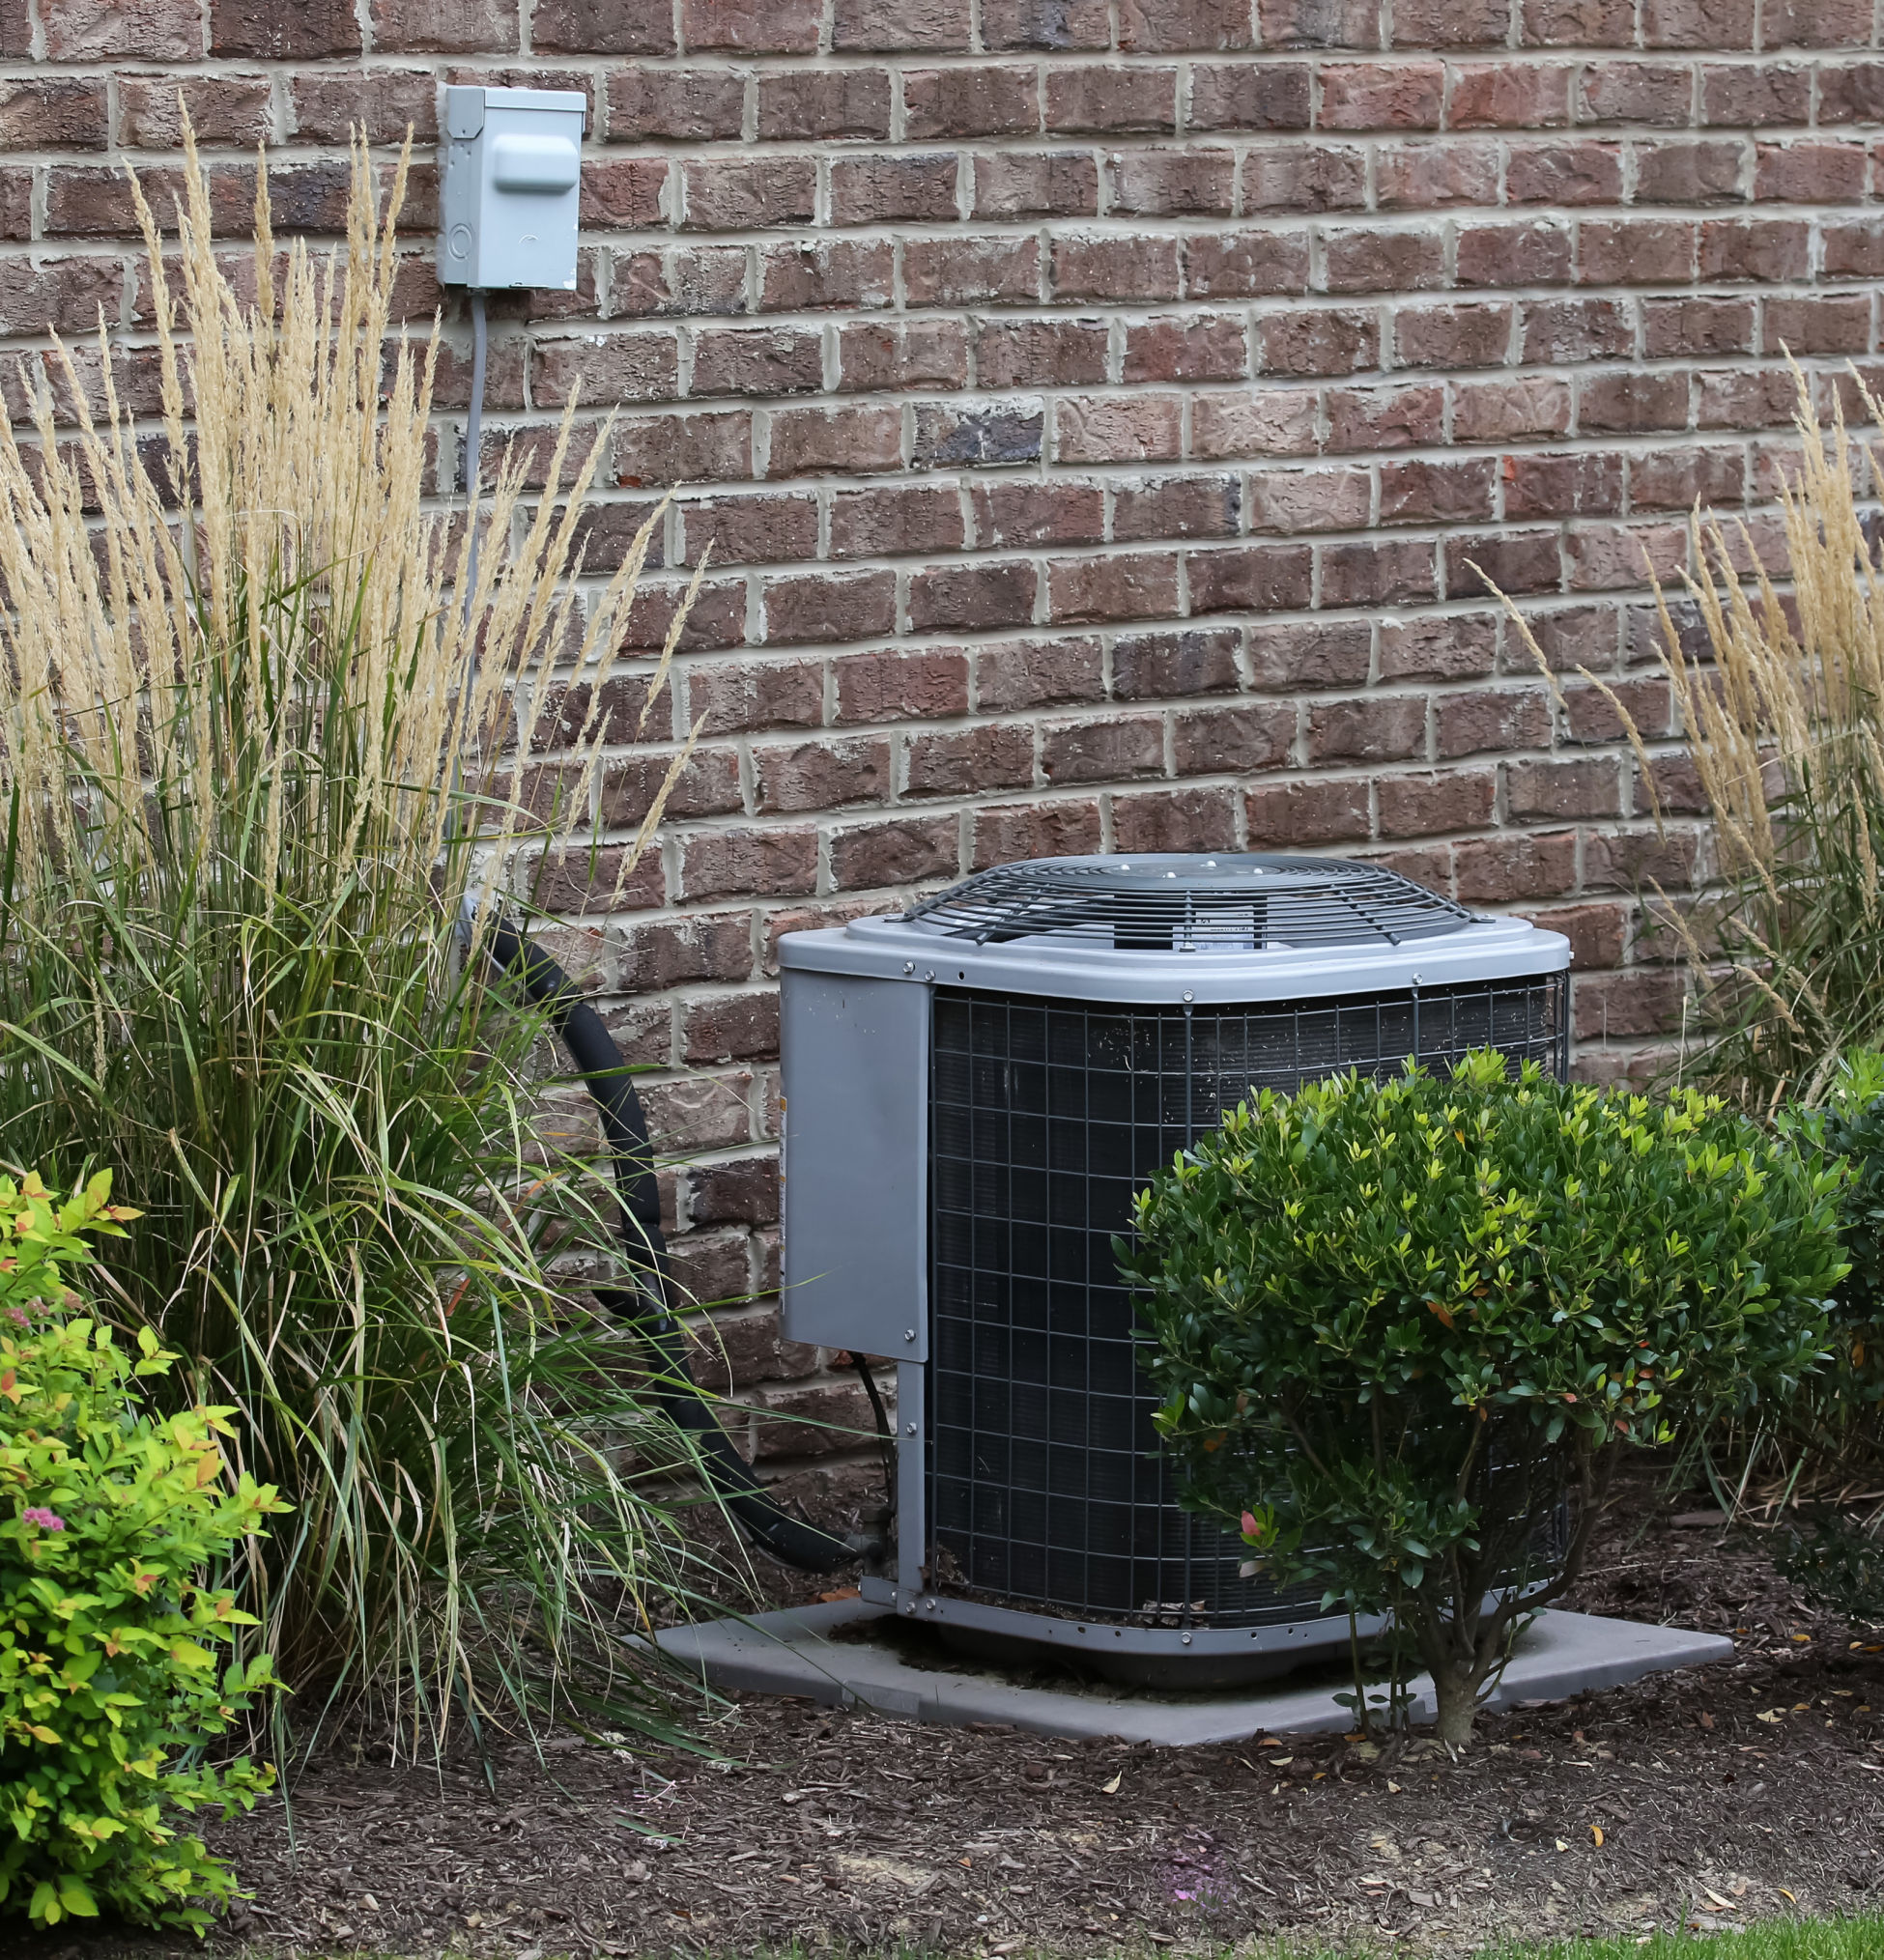 Call us for air conditioner repairs in Louisville, KY.